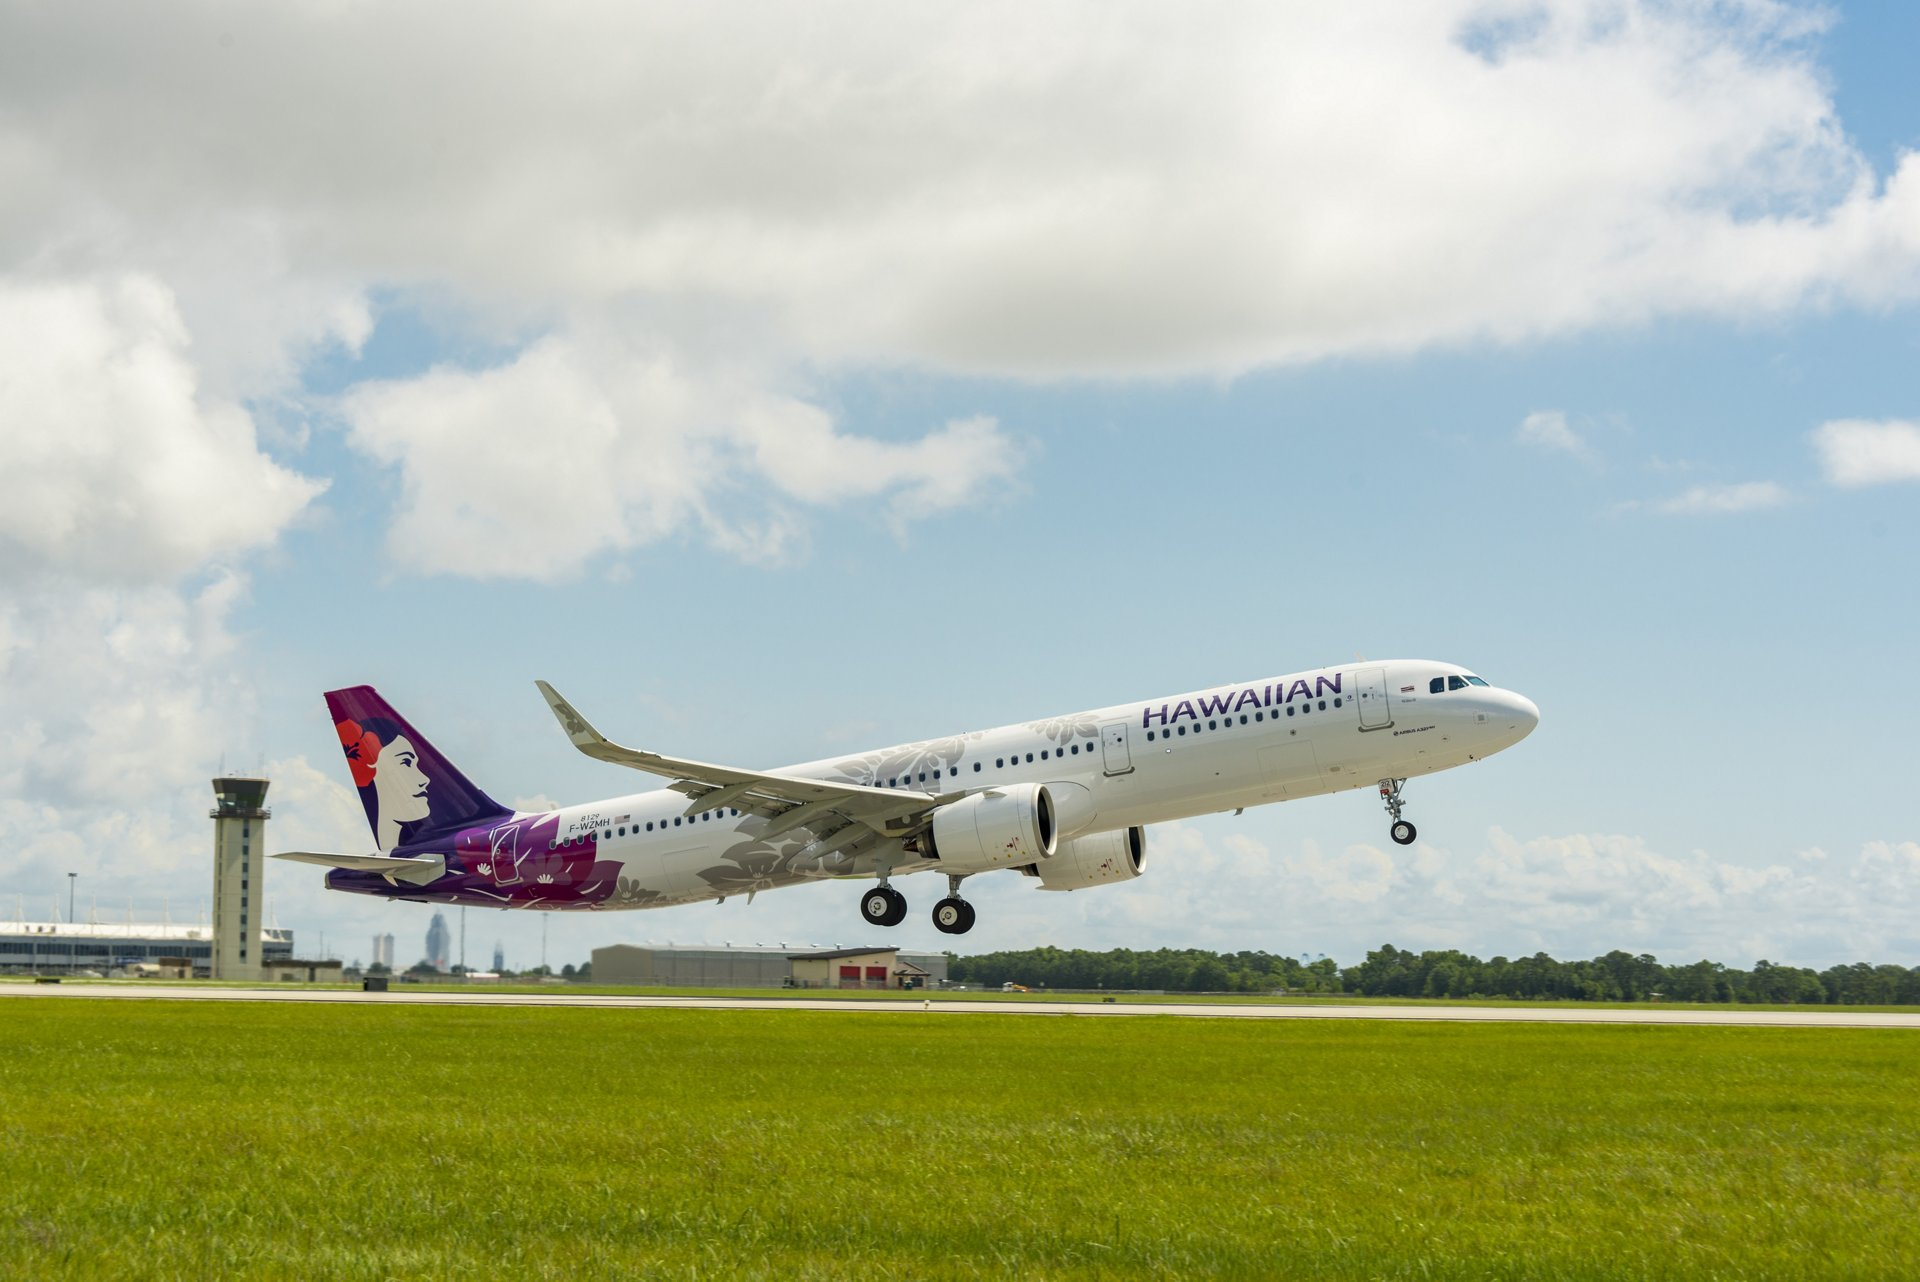 Hawaiian Airlines' A321neo